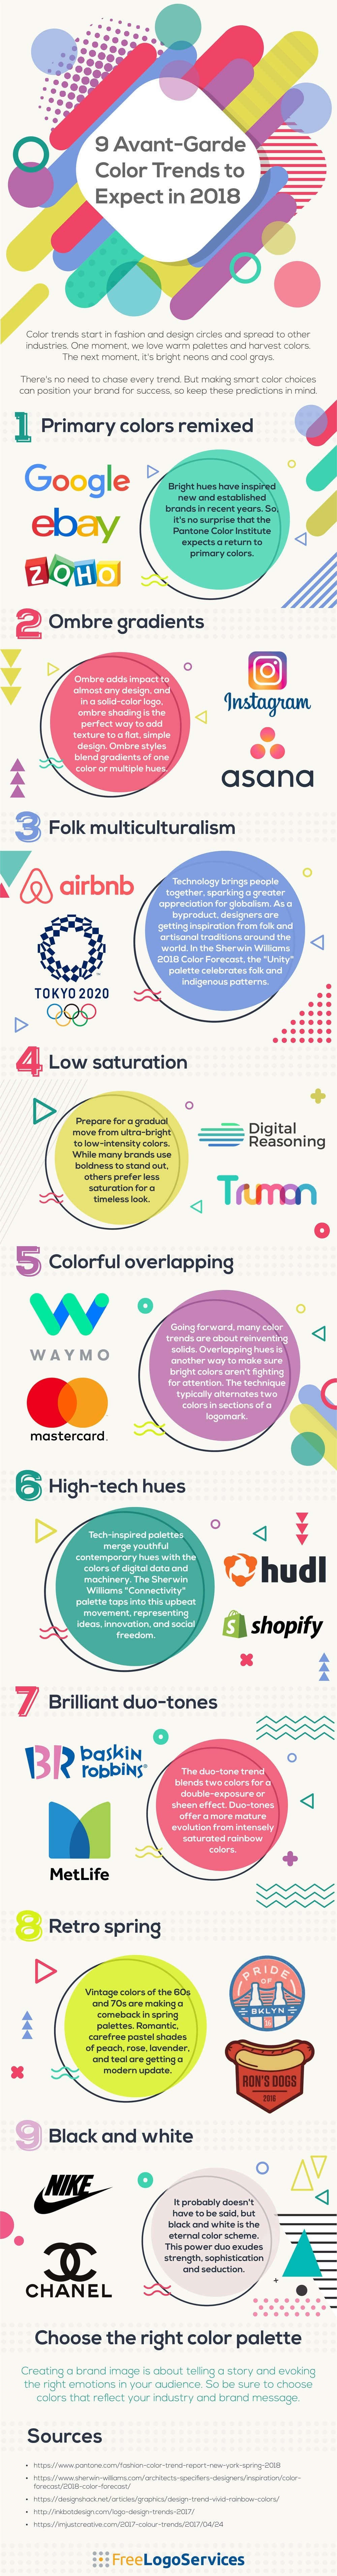 9 Avant-Garde Color Trends to Expect in 2018 - #infographic